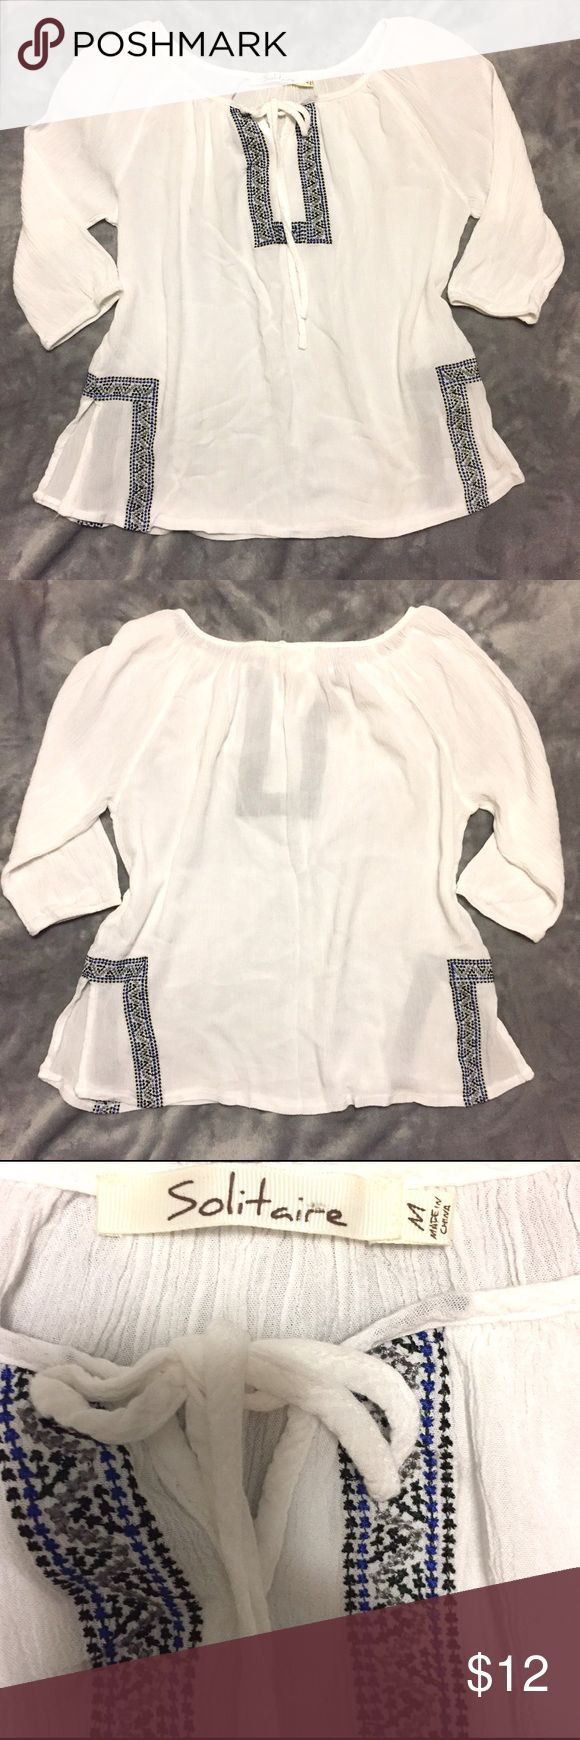 Solitaire from Buckle Boho Peasant Top SZ Medium Solitaire from the store Buckle. This boho peasant top is in perfect new condition. Never worn. Size Medium. Gorgeous woven embroidery. True to size. Buckle Tops Blouses